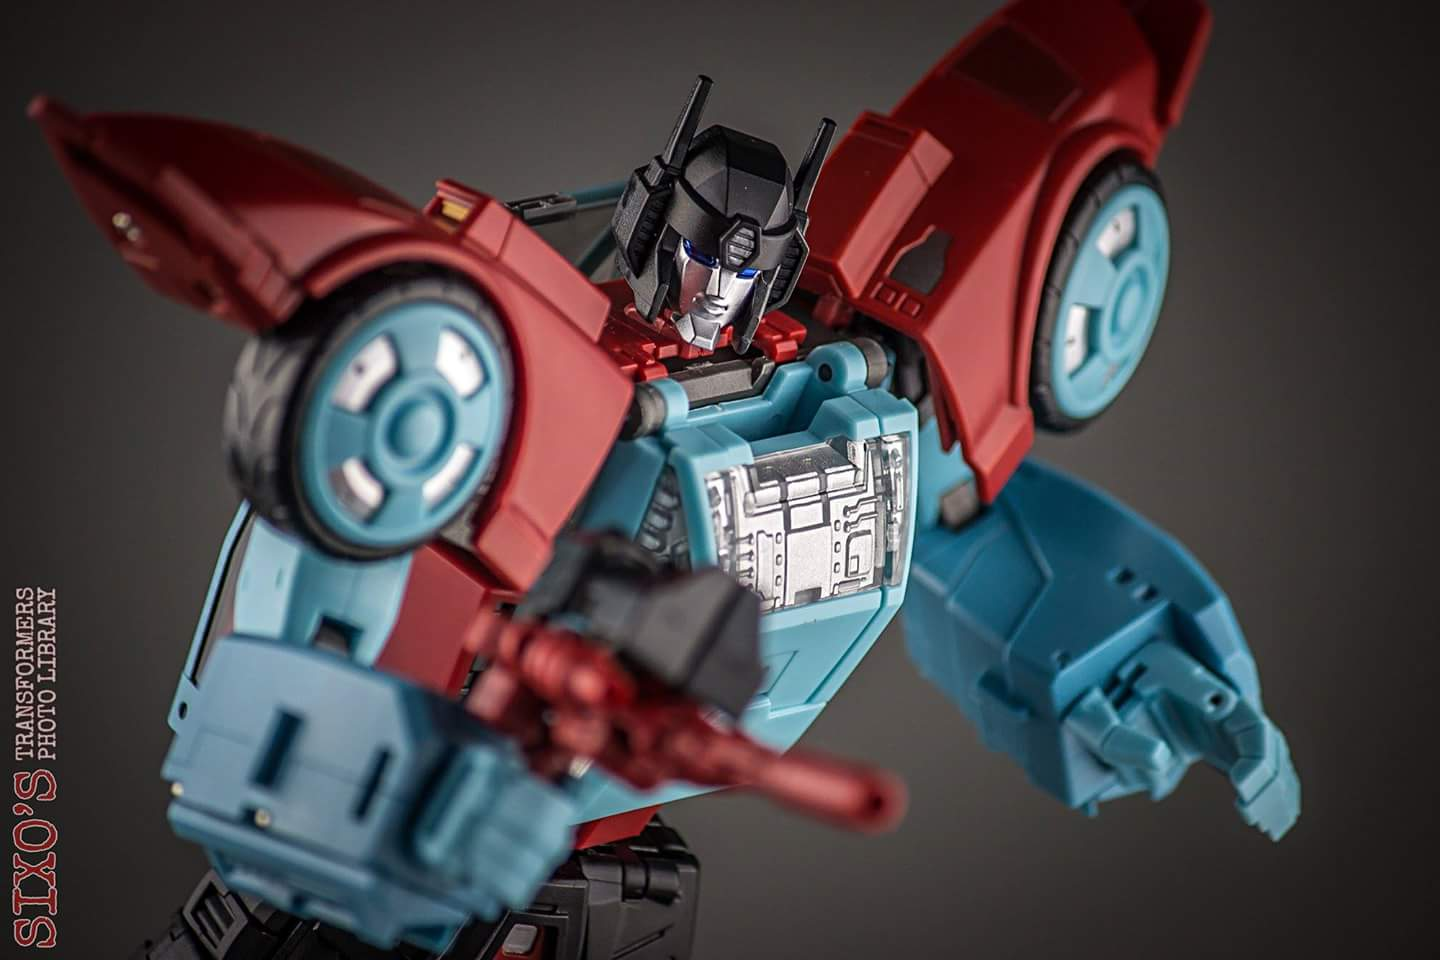 [Maketoys] Produit Tiers - Jouets MTRM - aka Headmasters et Targetmasters - Page 5 AQ8KpSn6